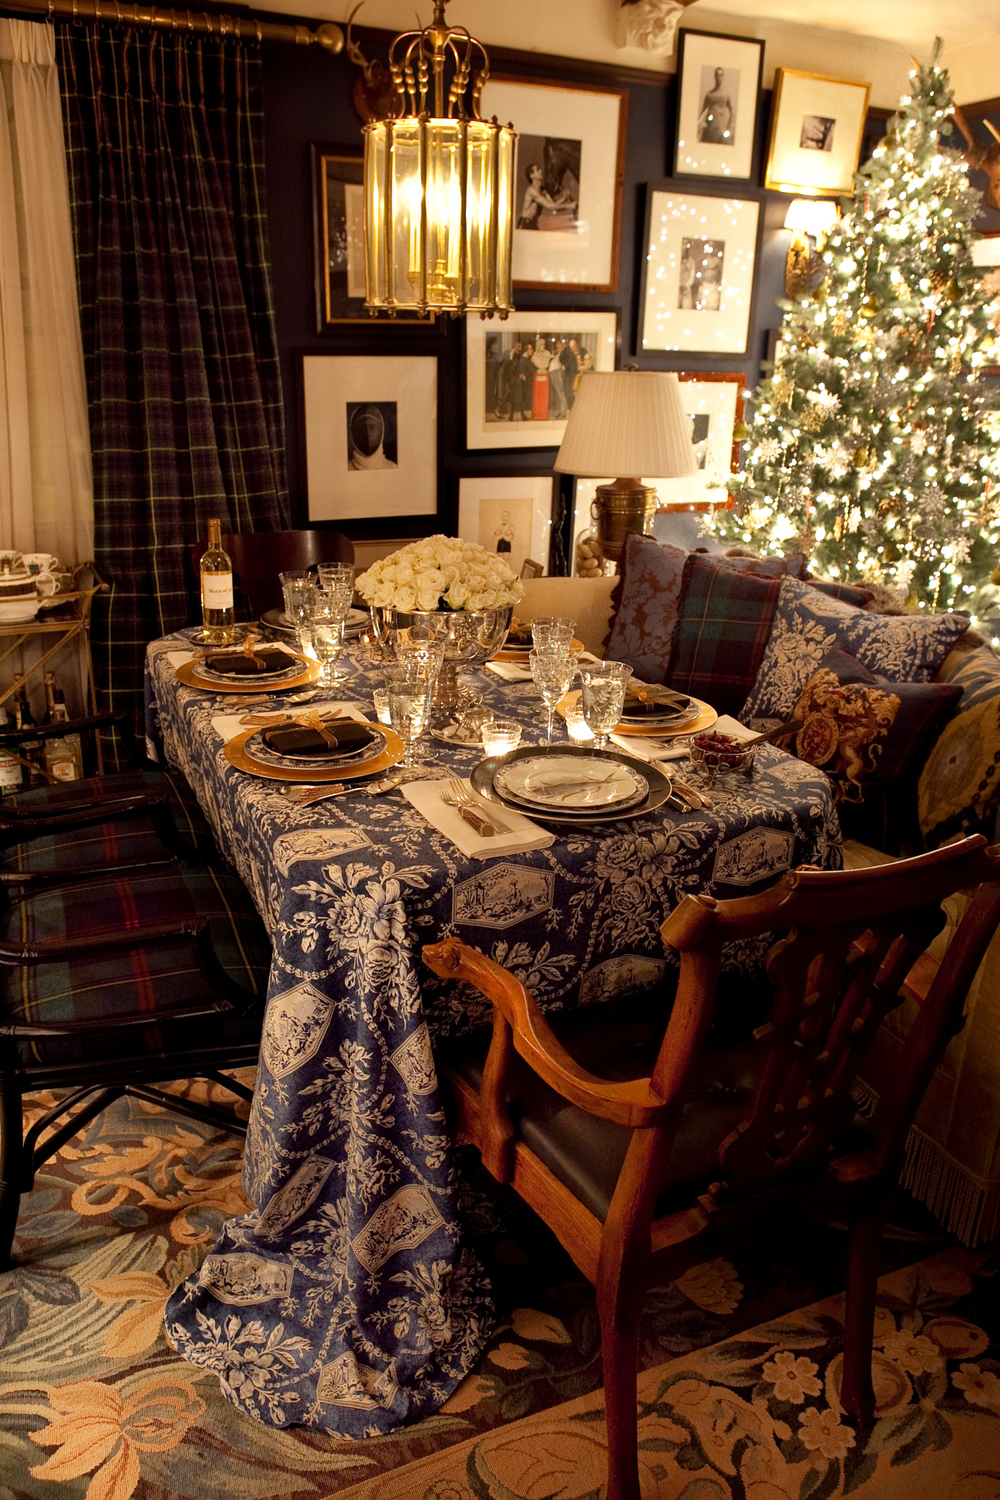 Scot Meacham Wood Design - Holiday 2012 3.jpg